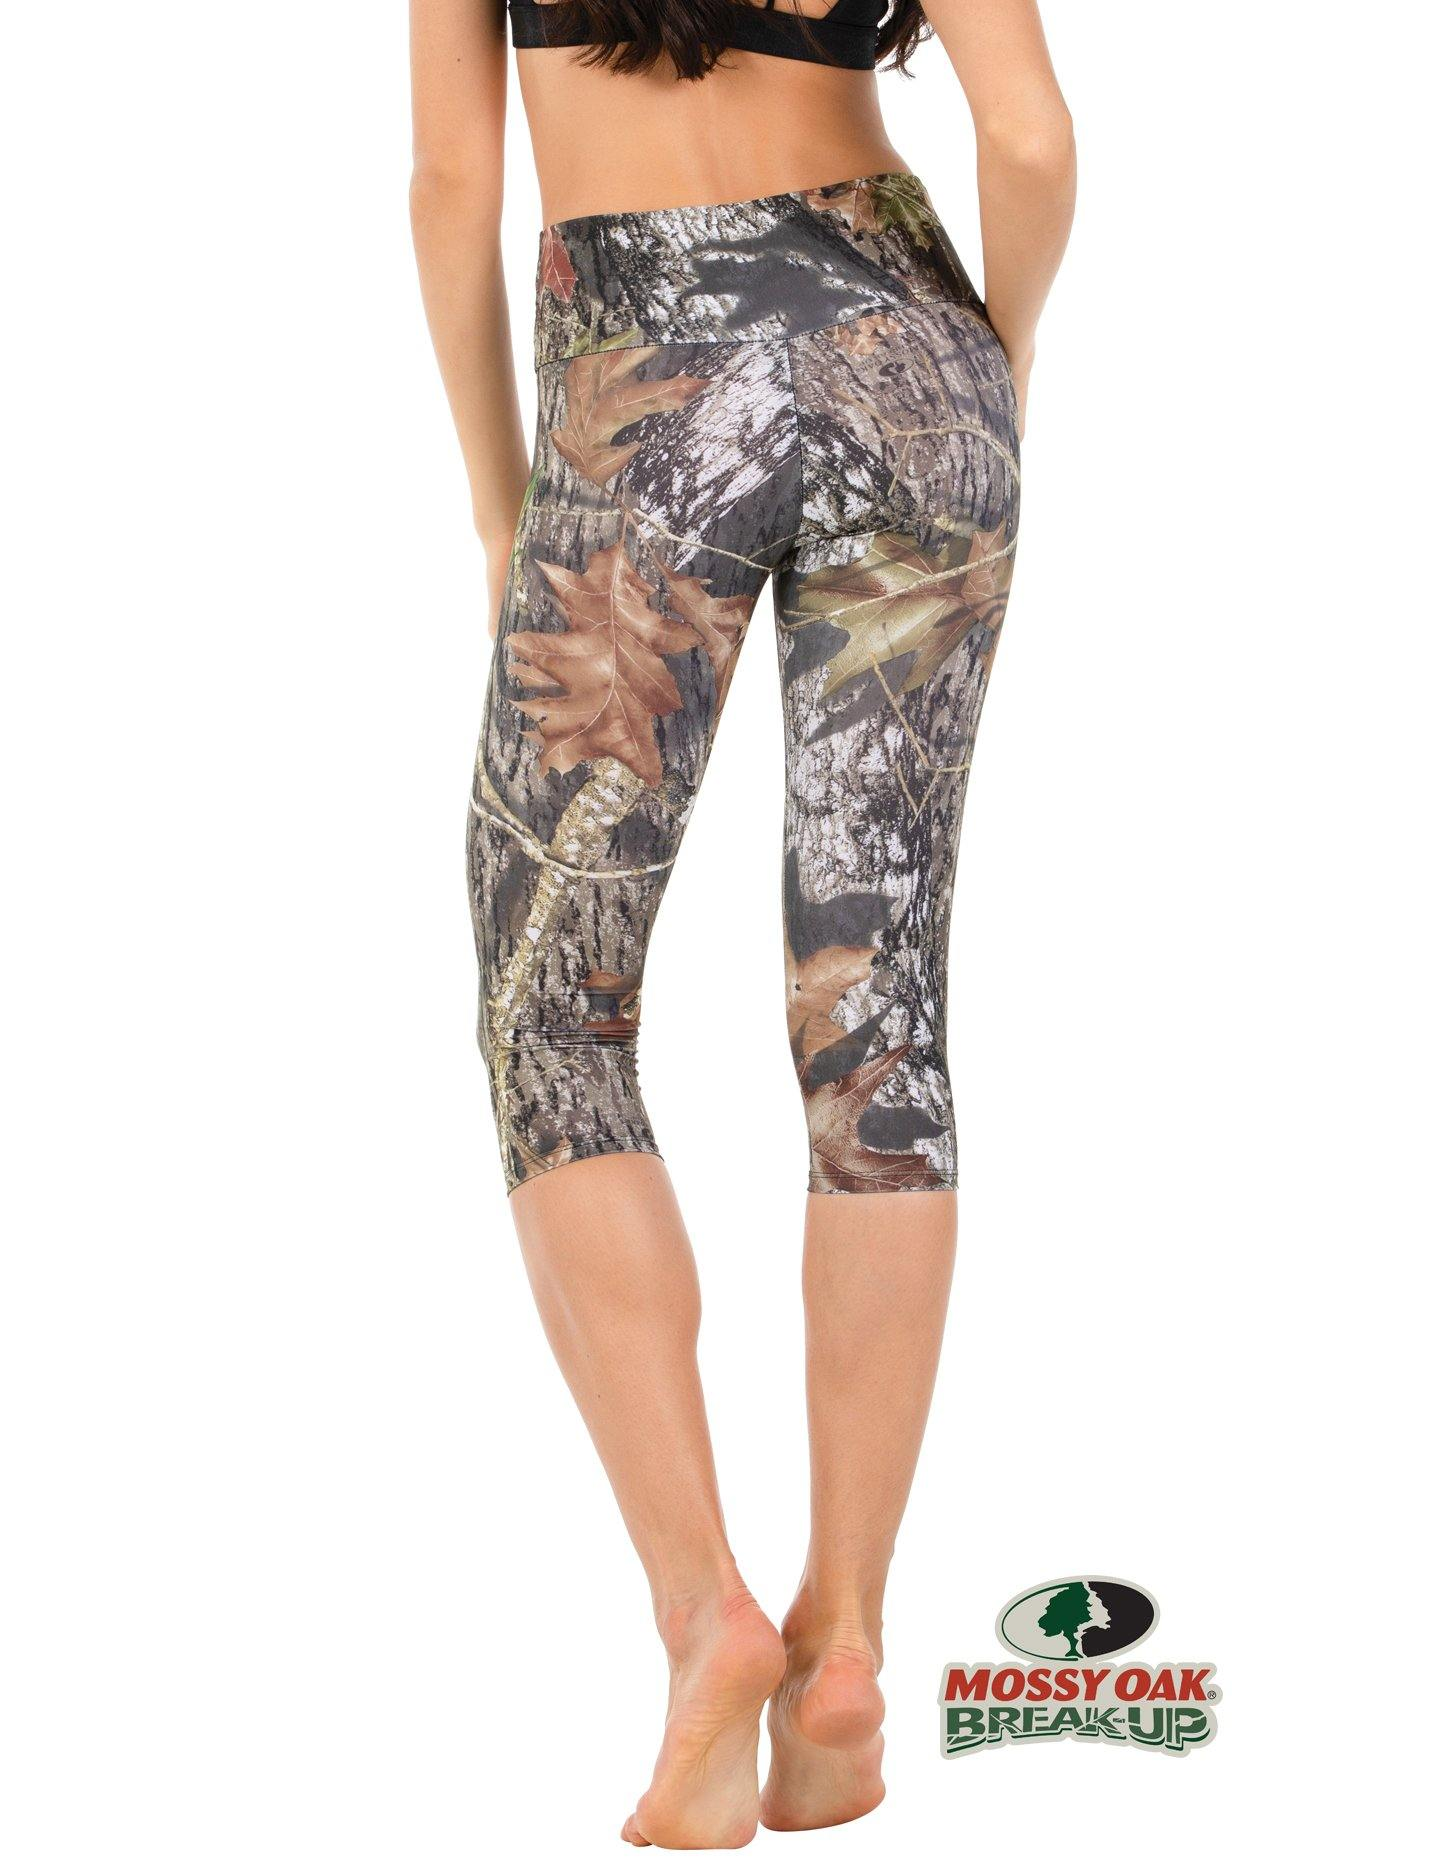 Apsara Leggings High Waist Capri, Mossy Oak Break-Up